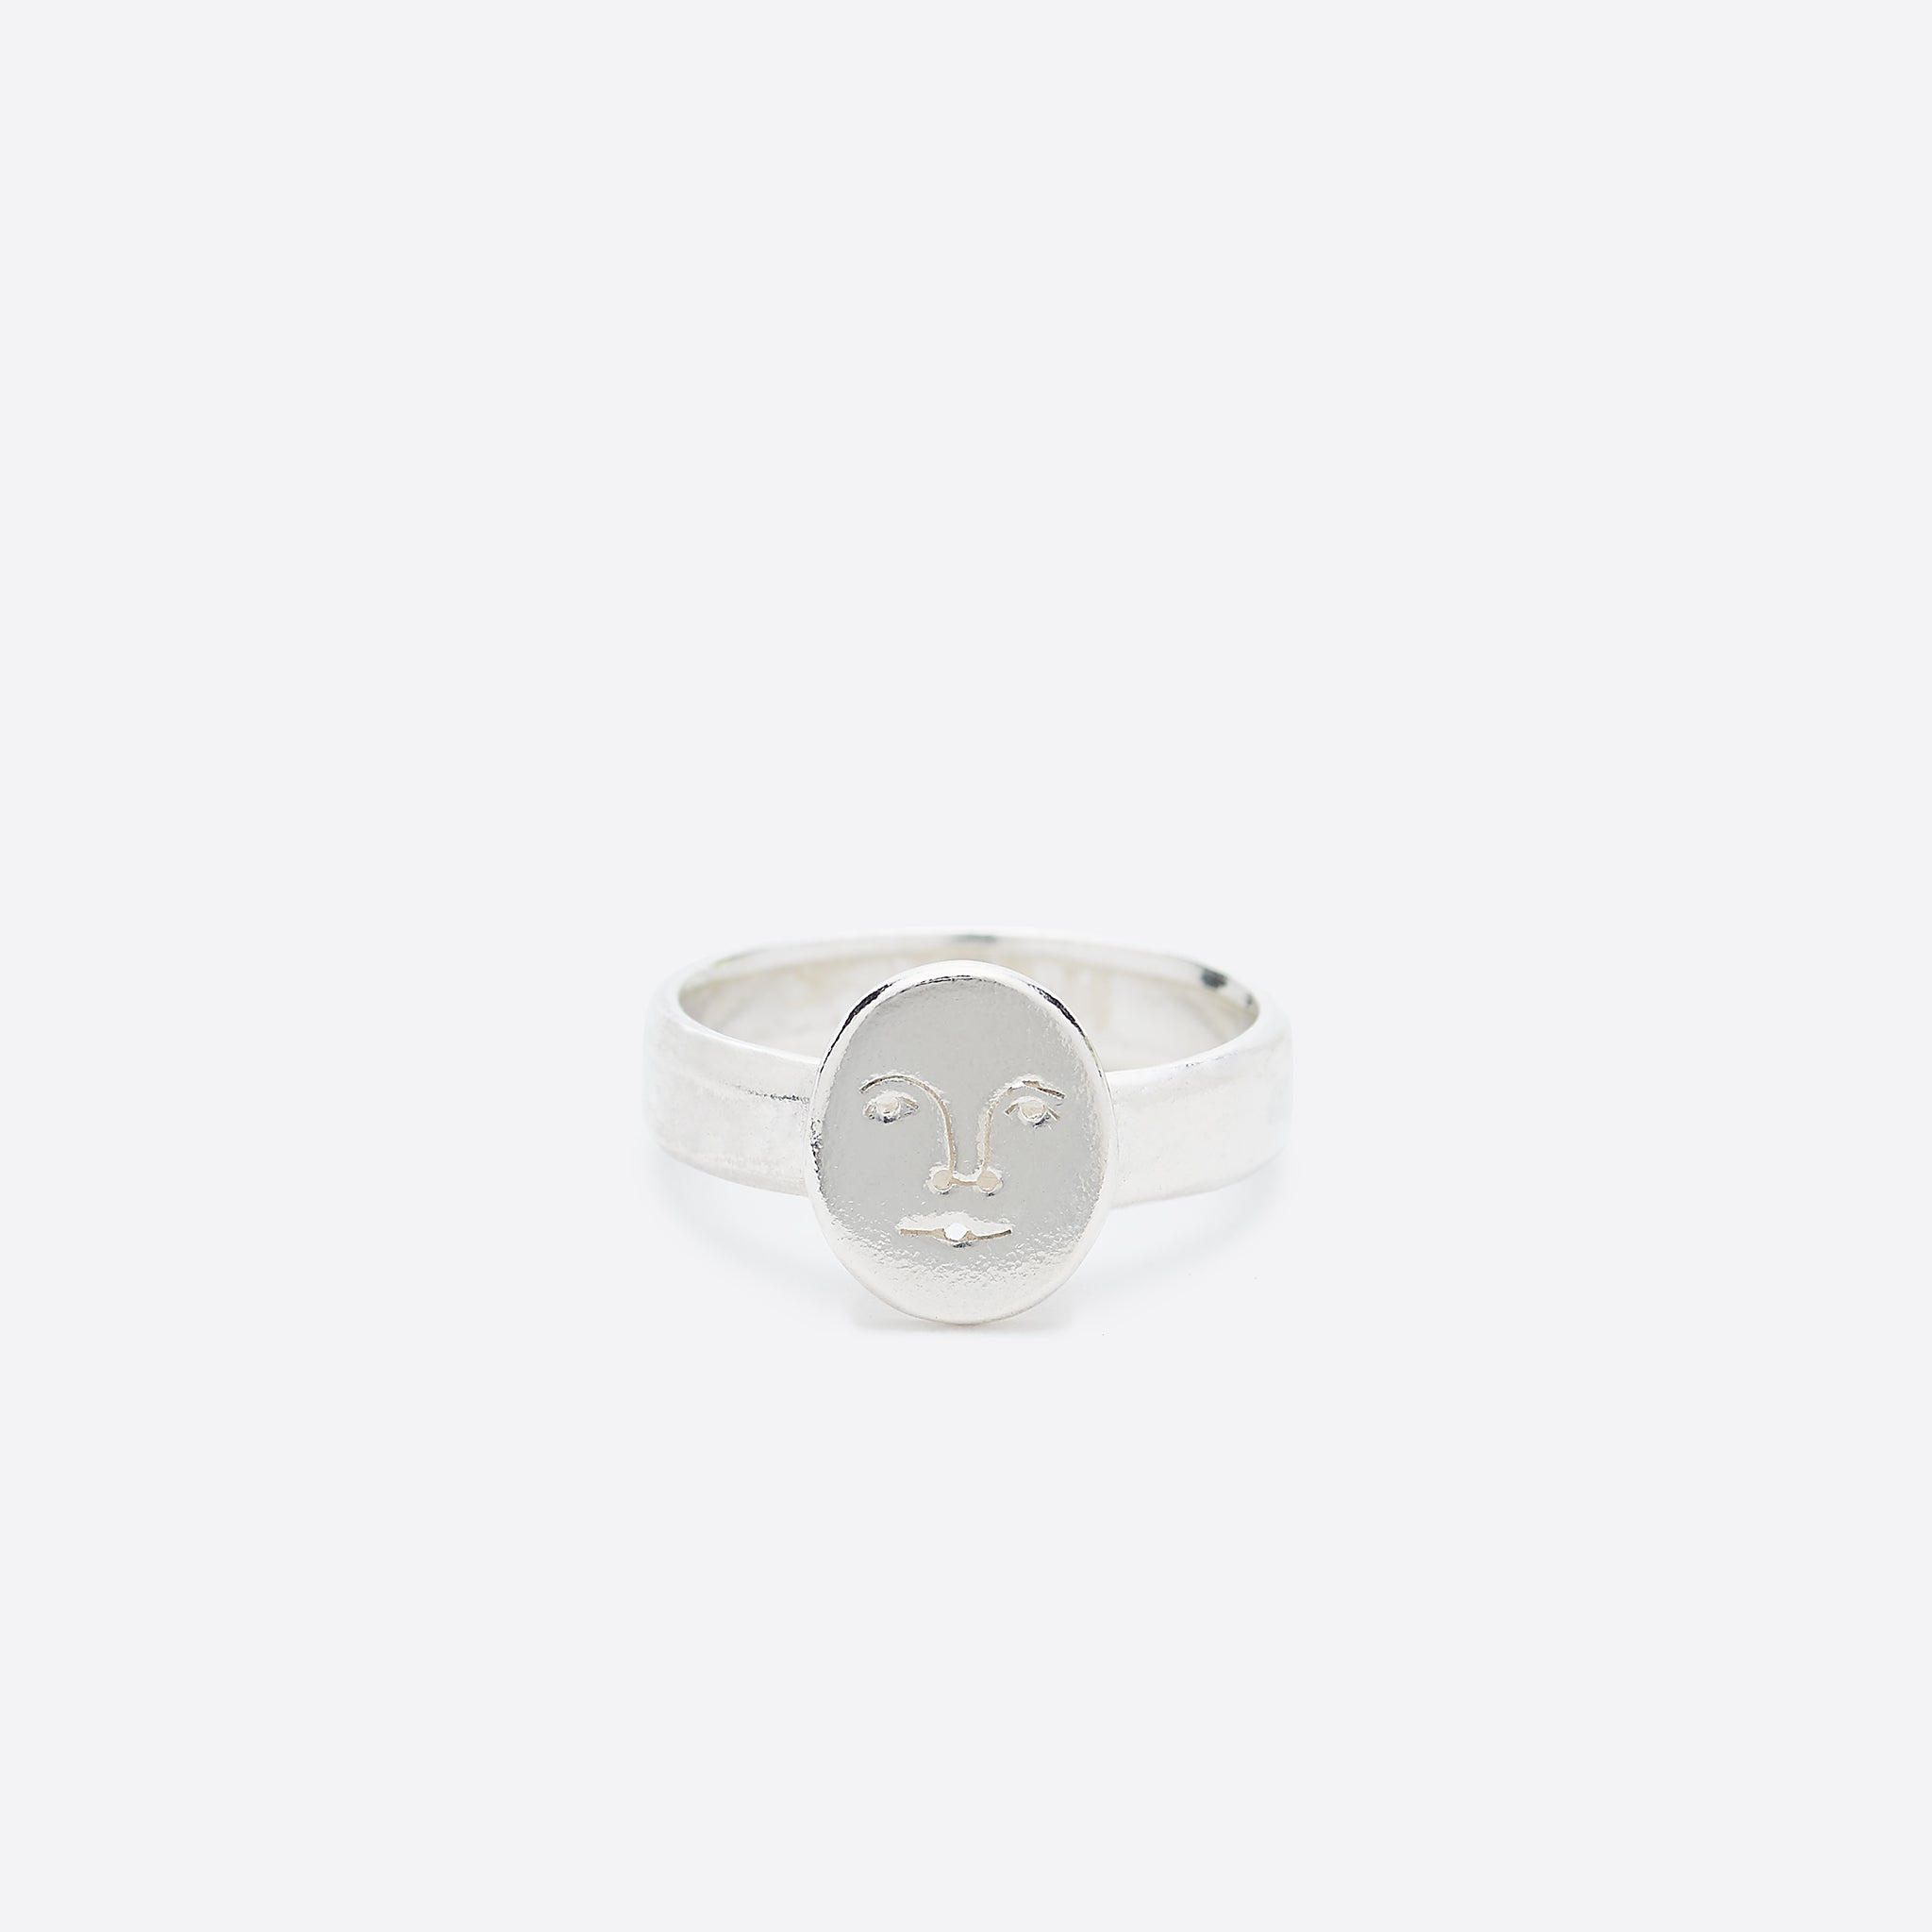 Polly Collins Mini Moon Face Ring in Silver